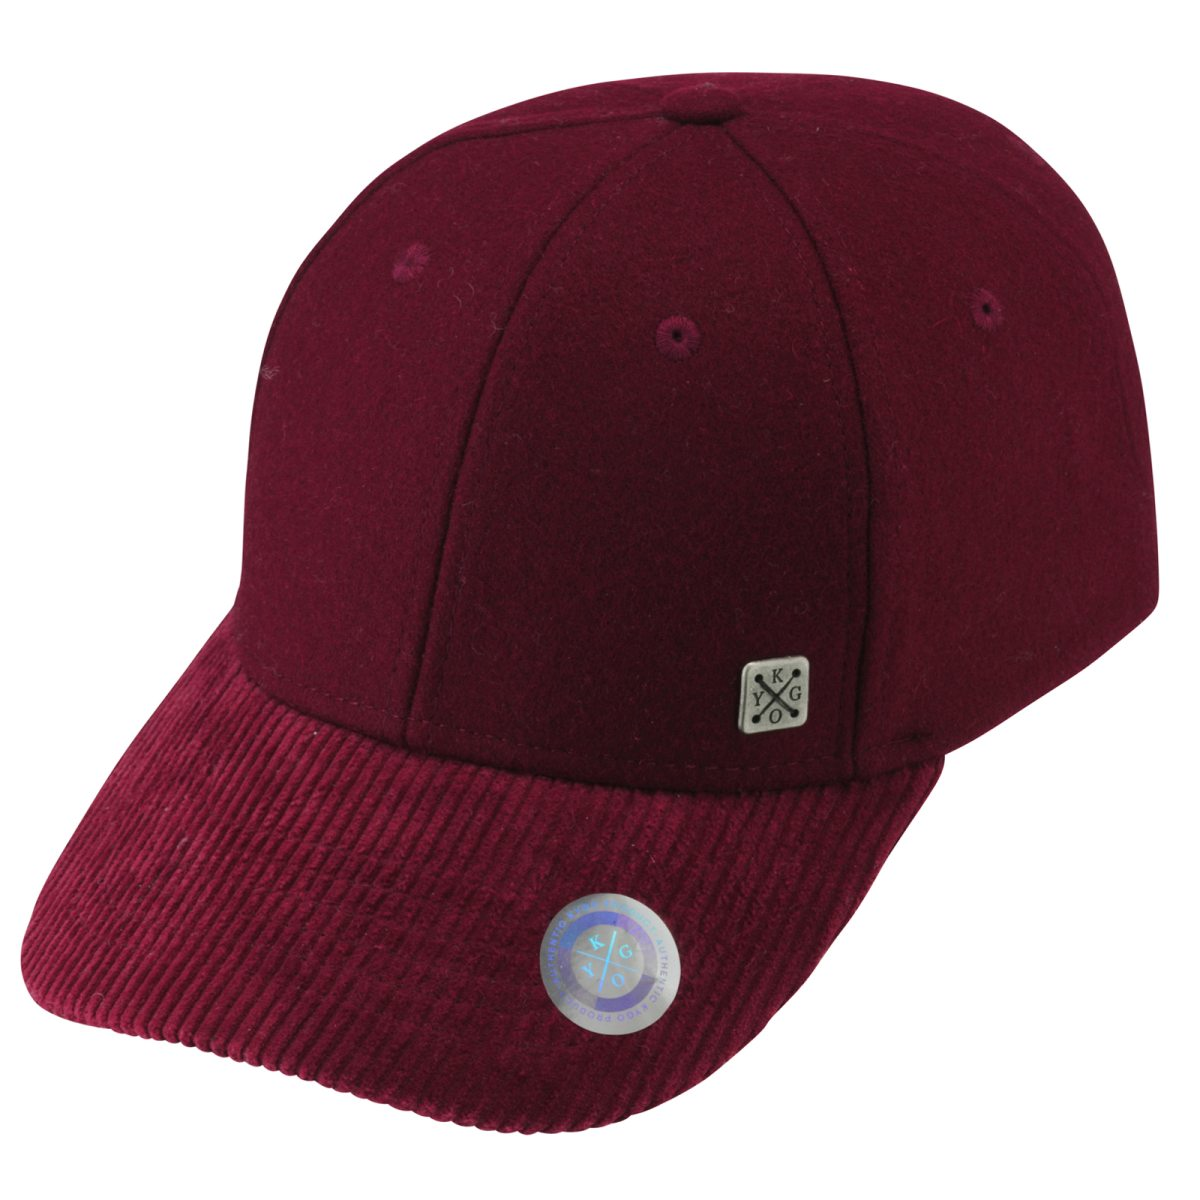 Find kygo darwin wool baseball cap melange caps . Shop every store ... 7a52e04cc2cd